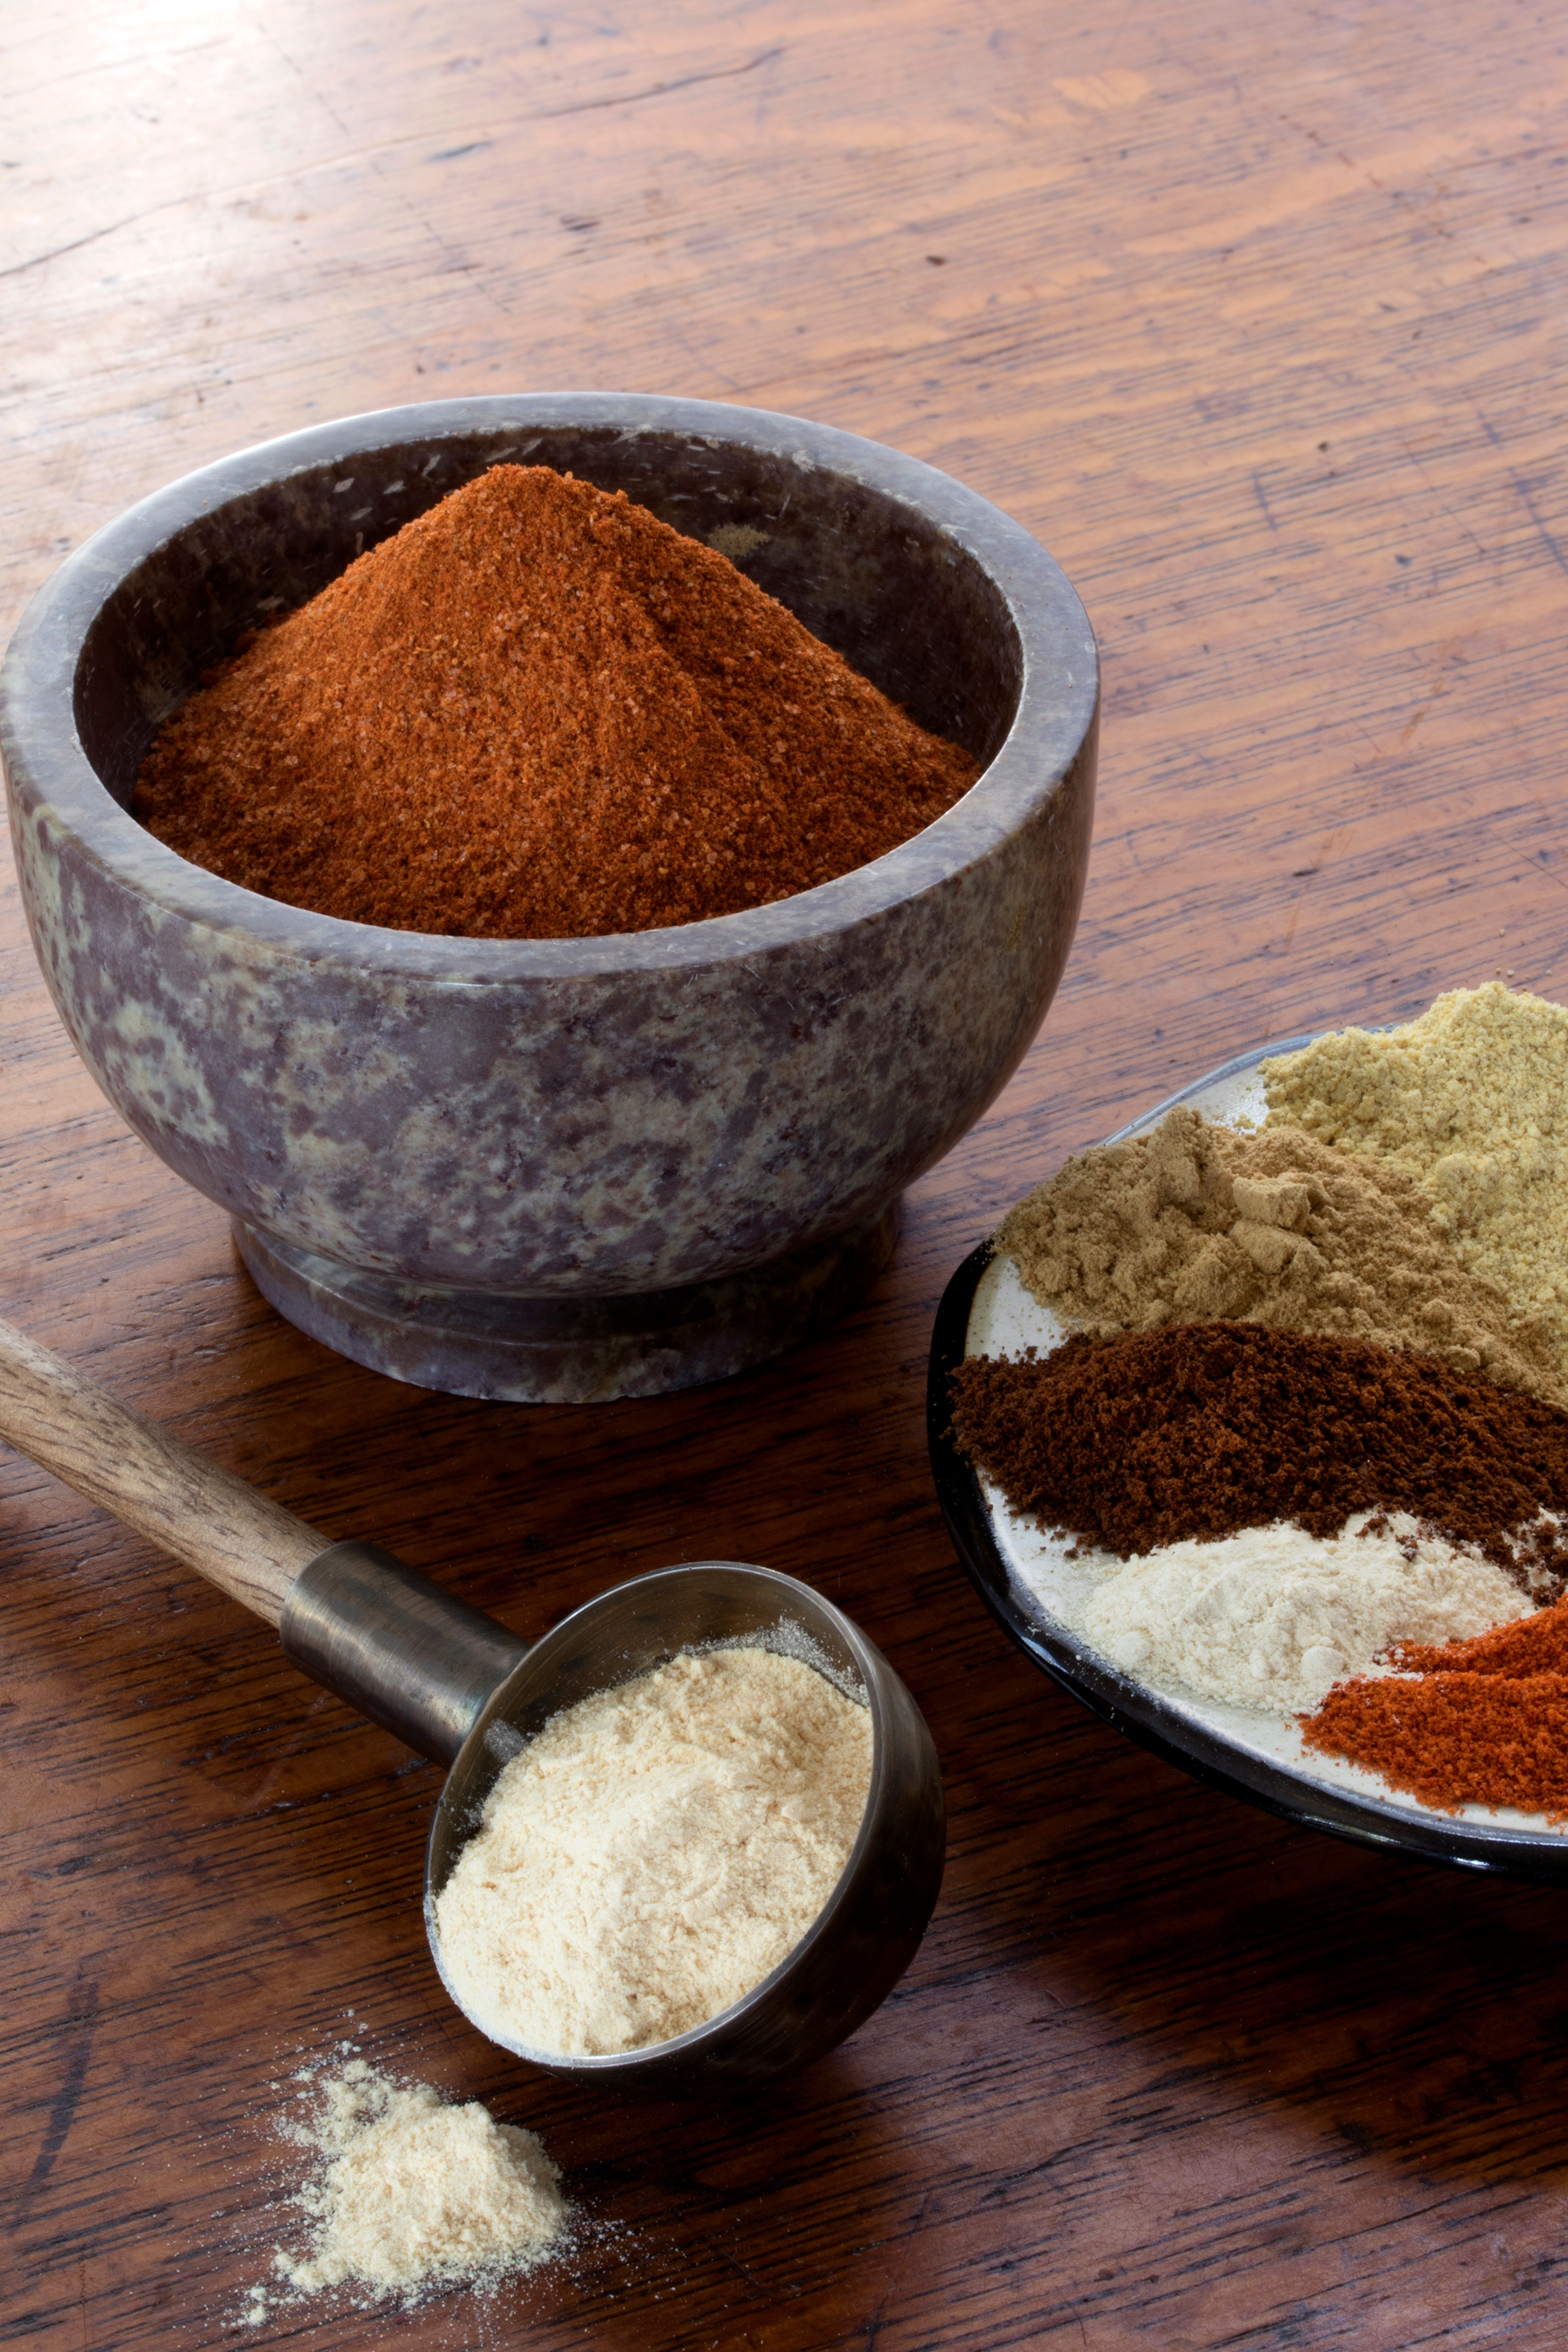 World Spice Blend Ethiopian Berbere In A Mortar With Ingredients In A Plate